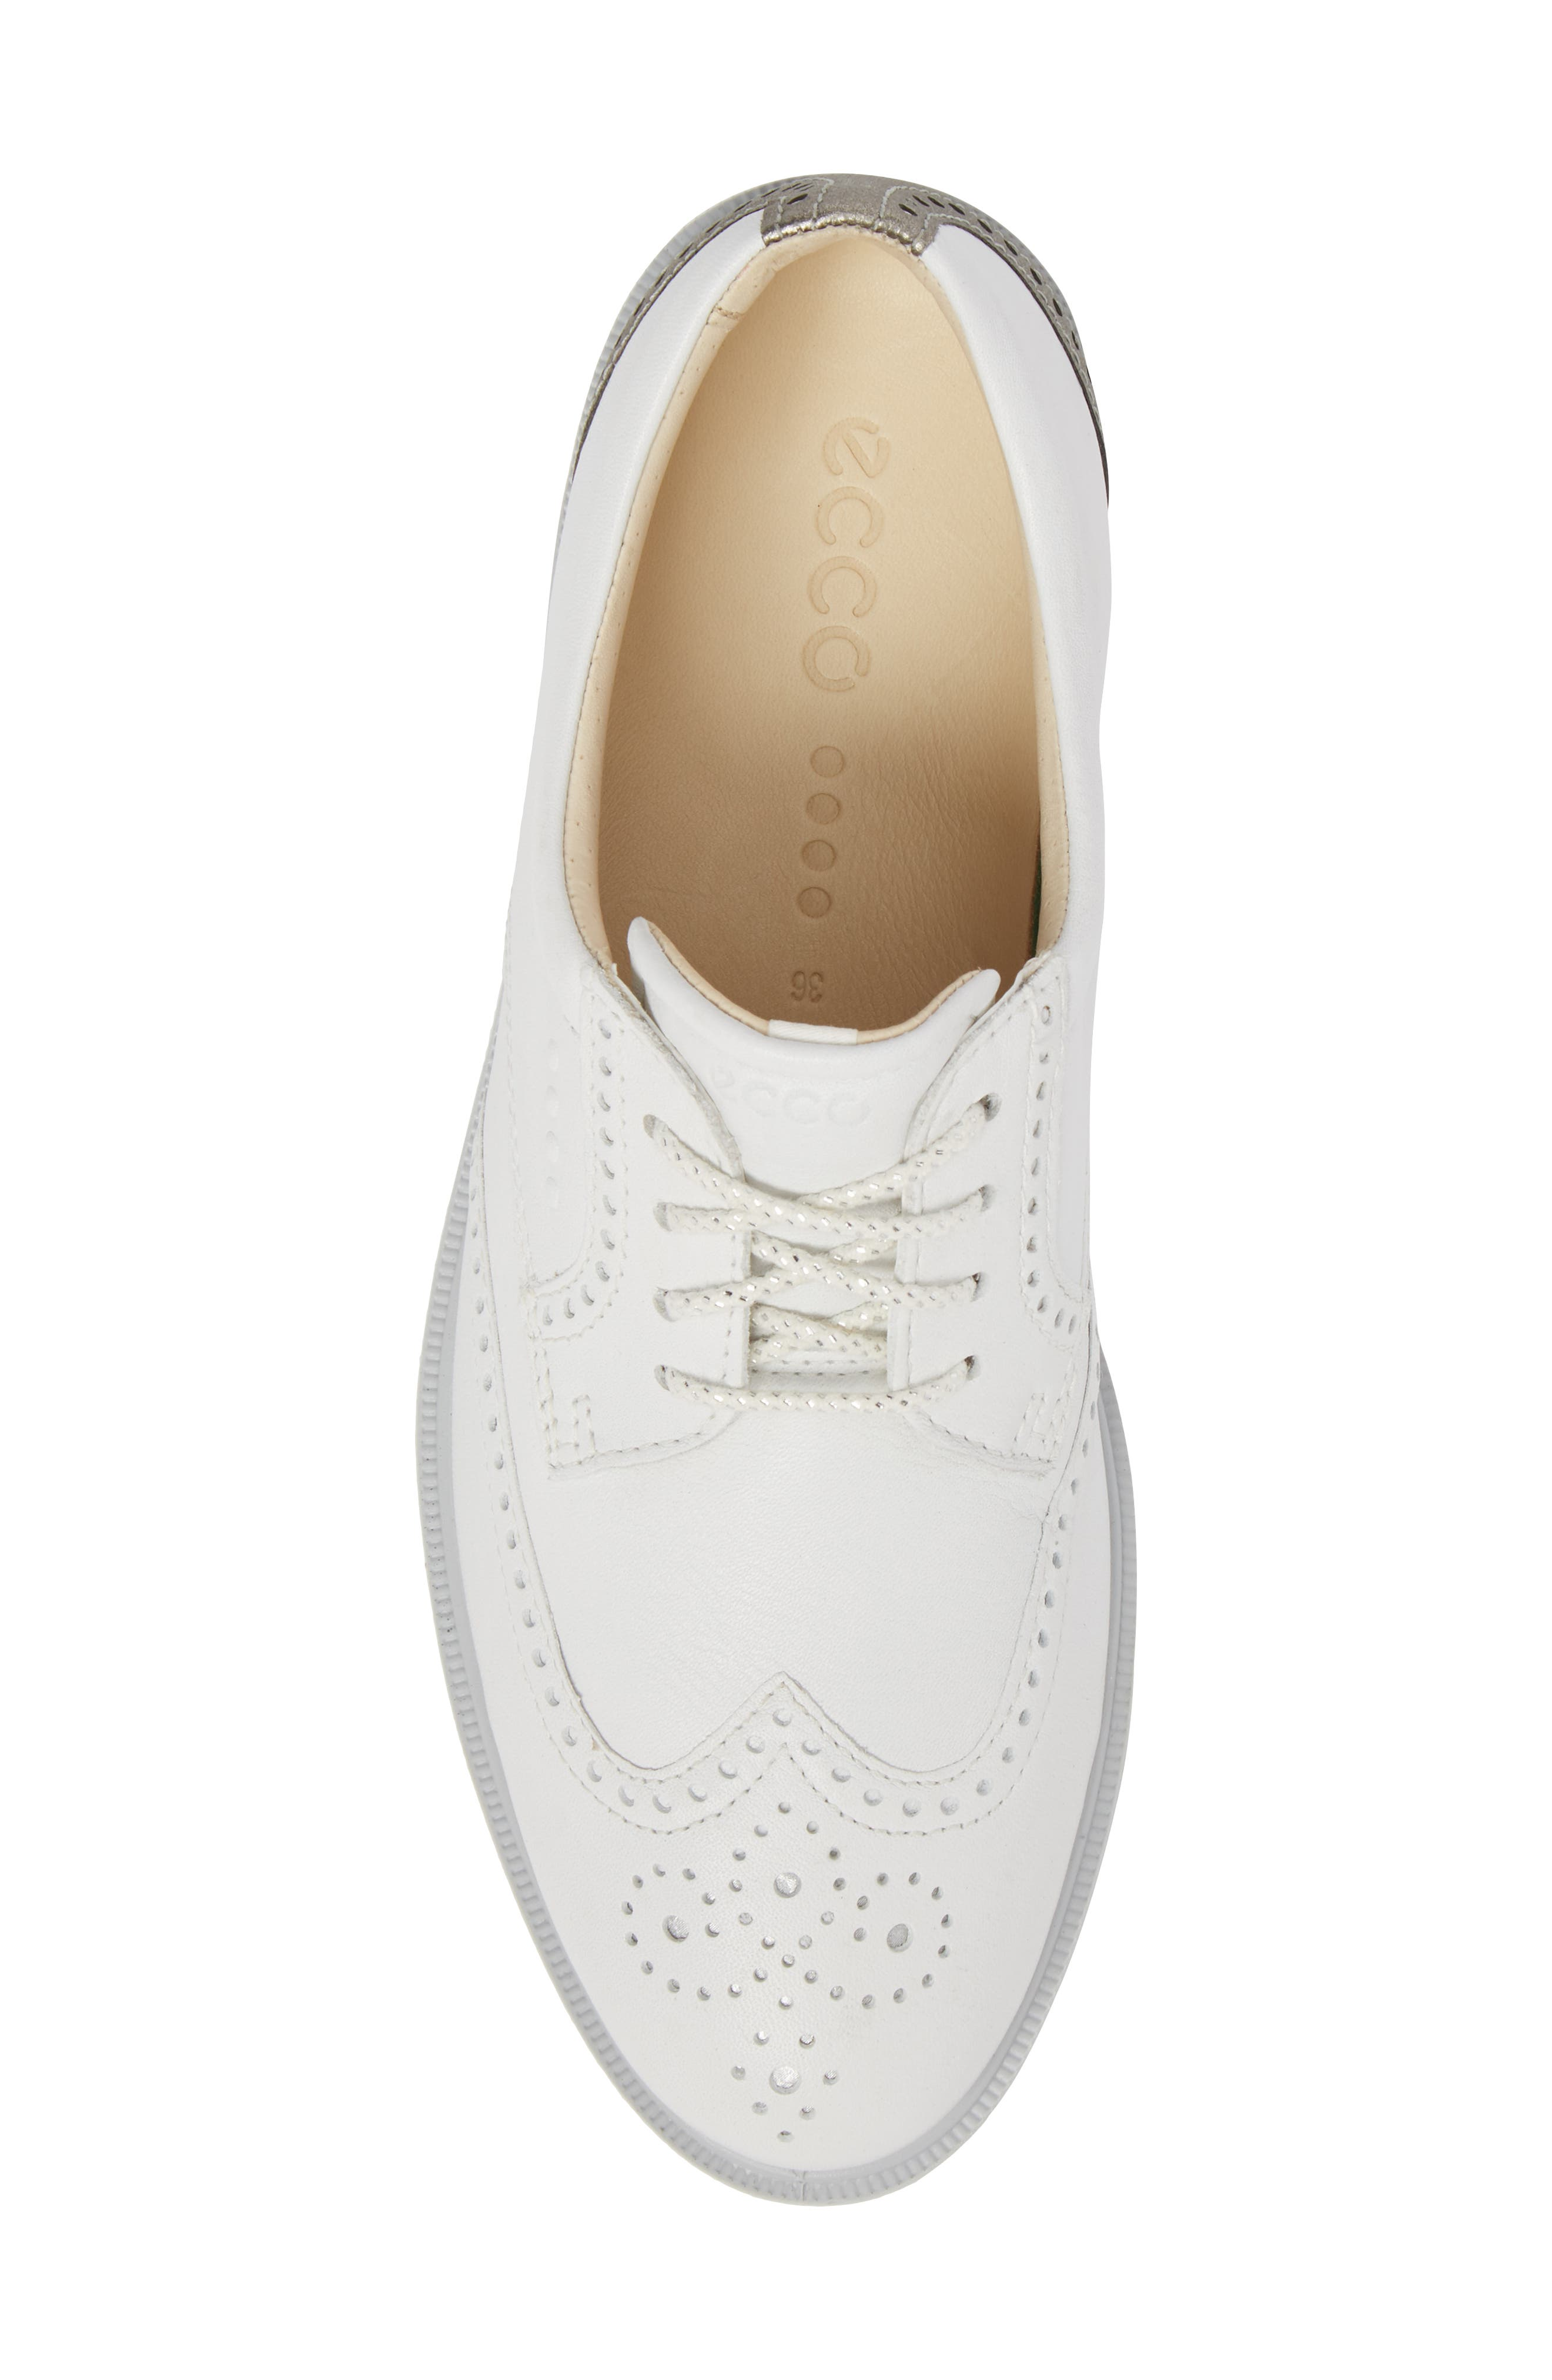 'Tour' Hybrid Wingtip Golf Shoe,                             Alternate thumbnail 5, color,                             WHITE LEATHER/ GREY